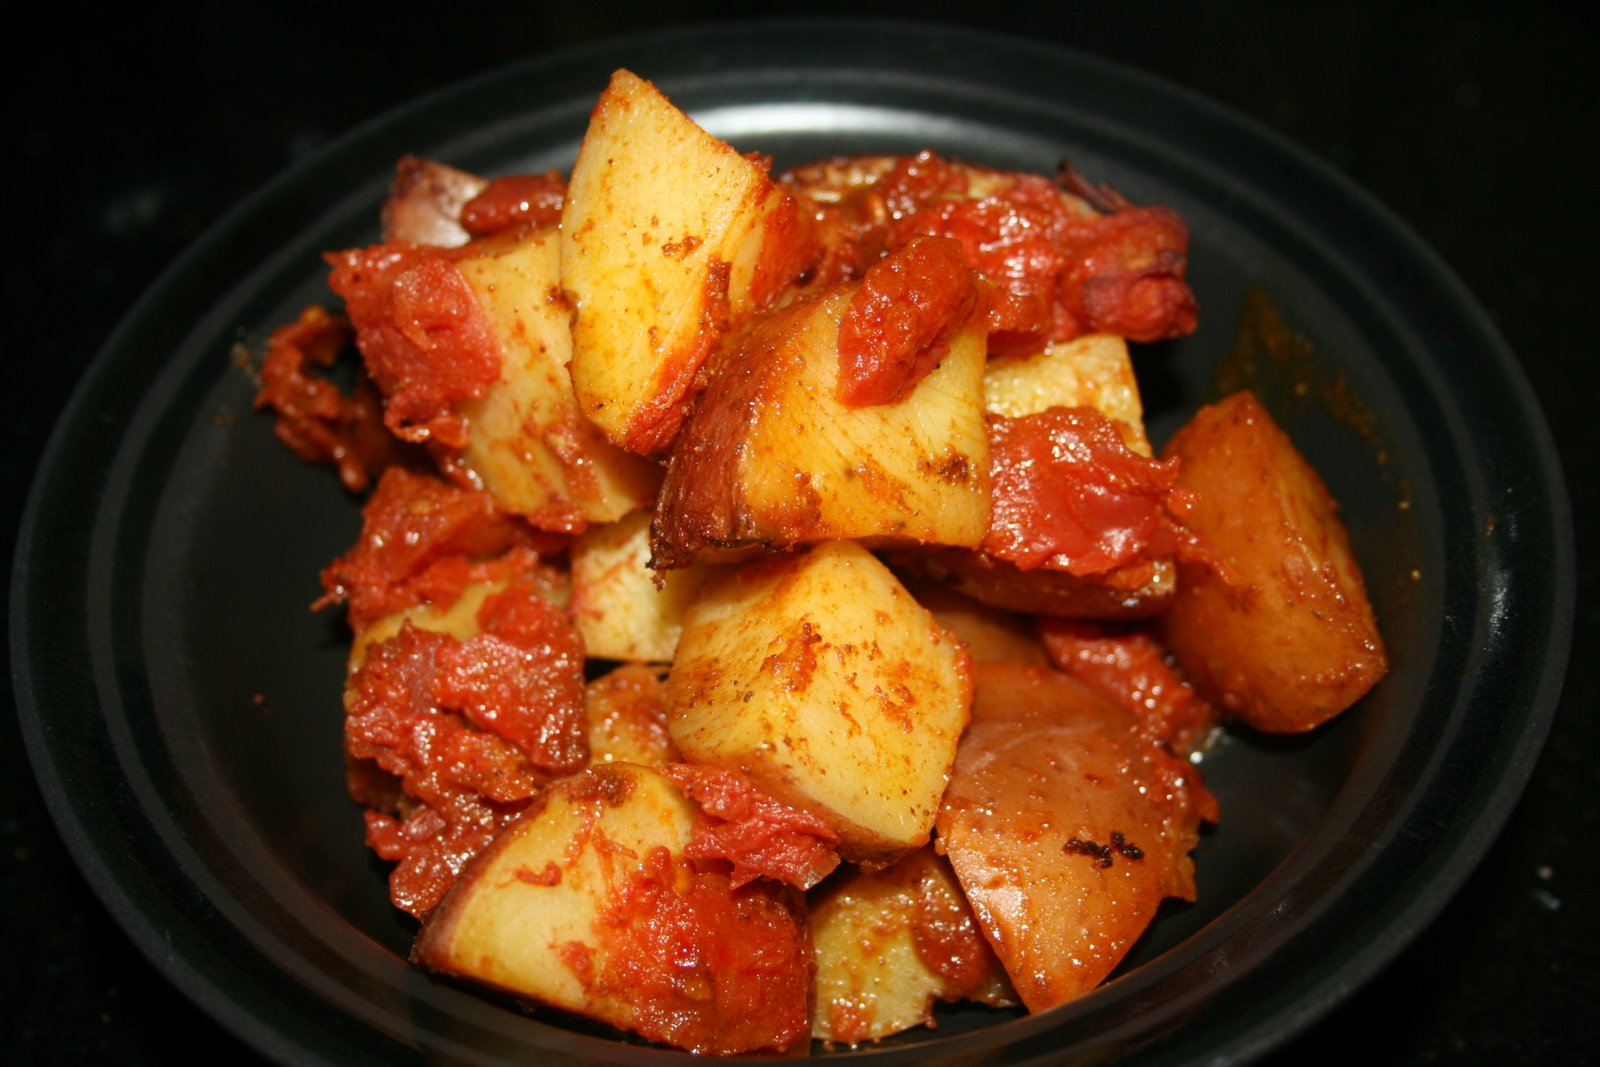 Crockpot tomato curried potatoes a year of slow cooking curried potatoes recipe made in the crockpot slow cooker forumfinder Image collections